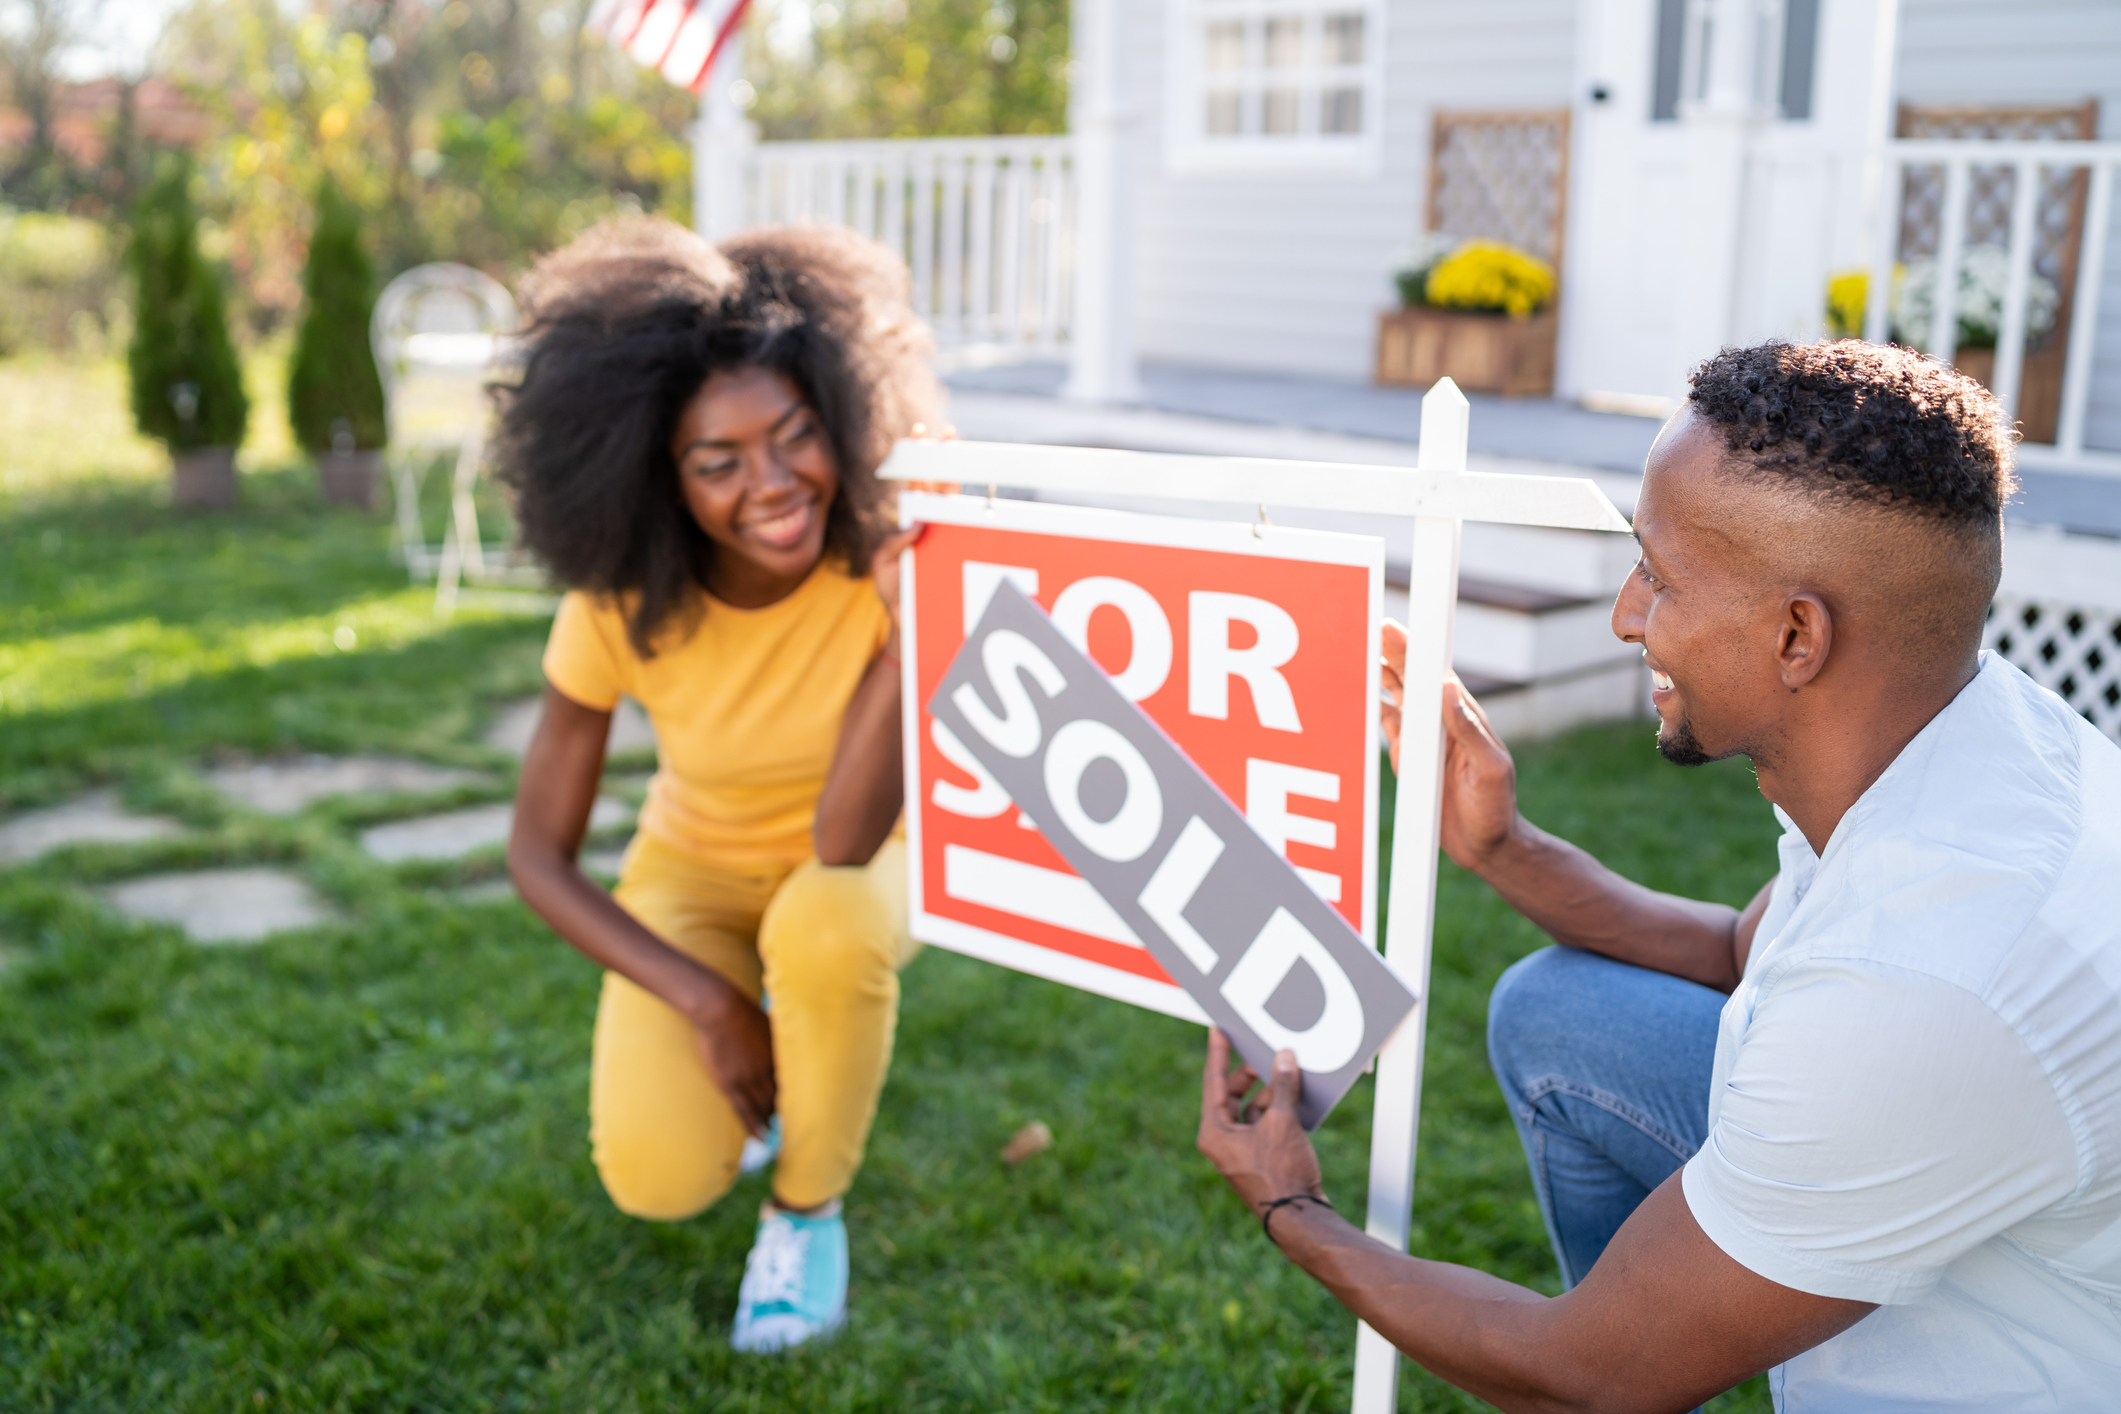 """A black couple crouch outside a newly-purchased home. The female partner at the left, on one knee, watches, smiling, as the male partner on the right places a """"sold"""" decal over the """"for sale"""" sign in the lawn."""